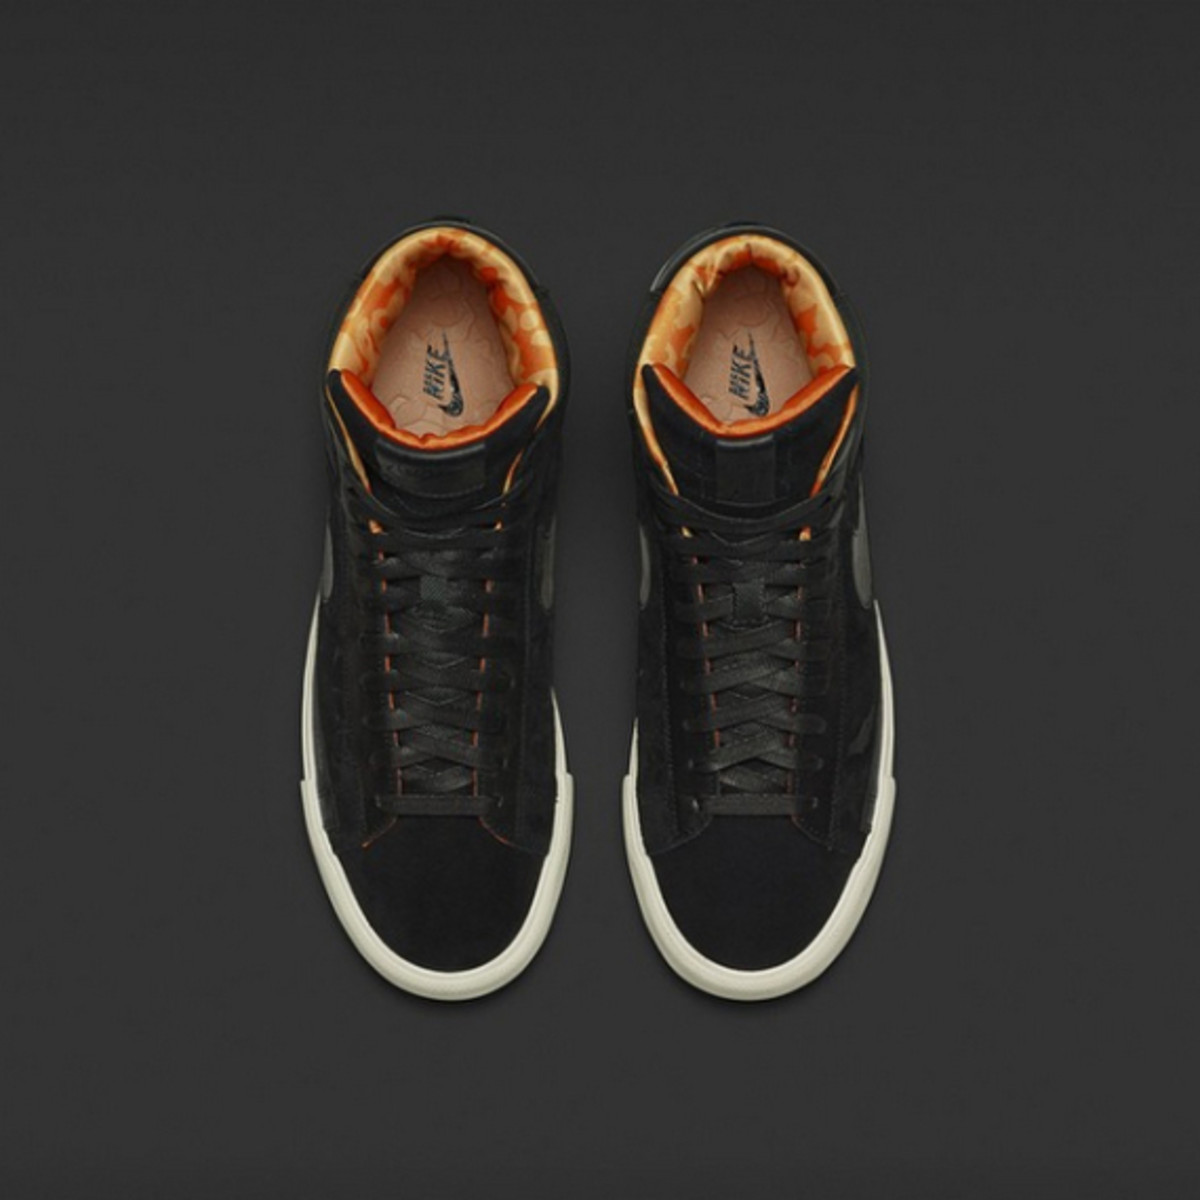 nike-mo-wax-capsule-collection-06